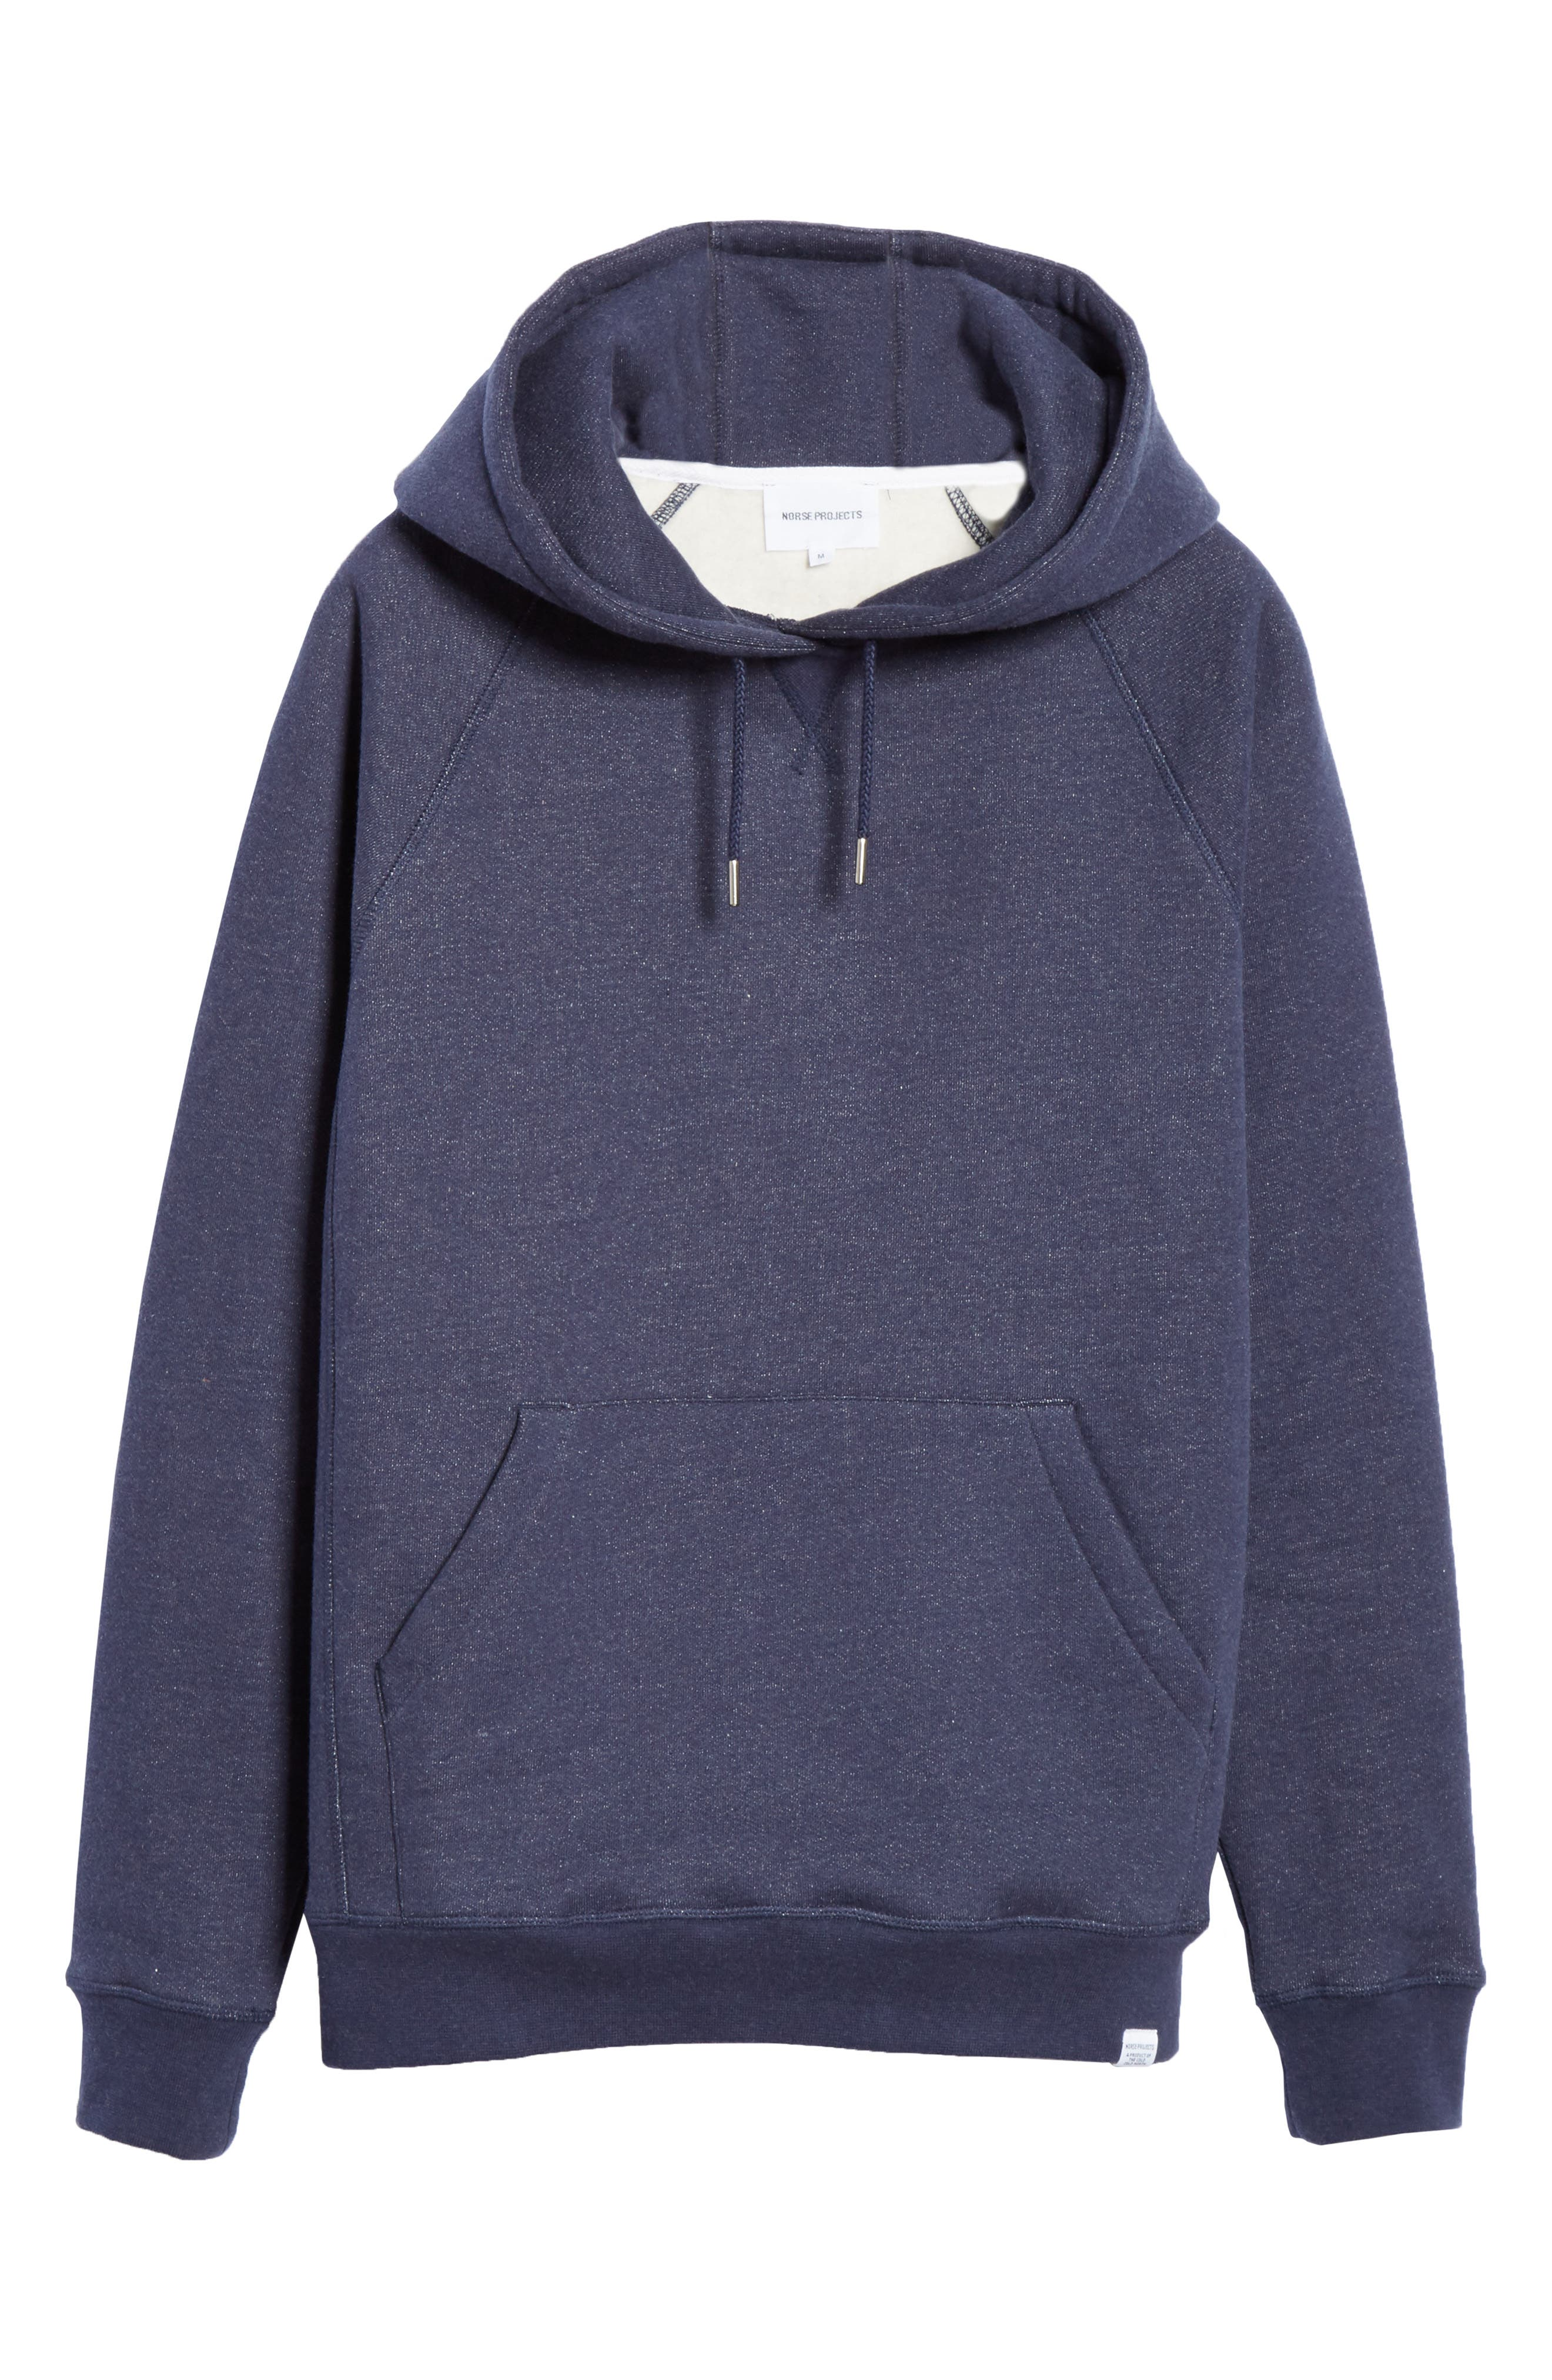 NORSE PROJECTS,                             Ketel Hoodie,                             Alternate thumbnail 6, color,                             DARK NAVY